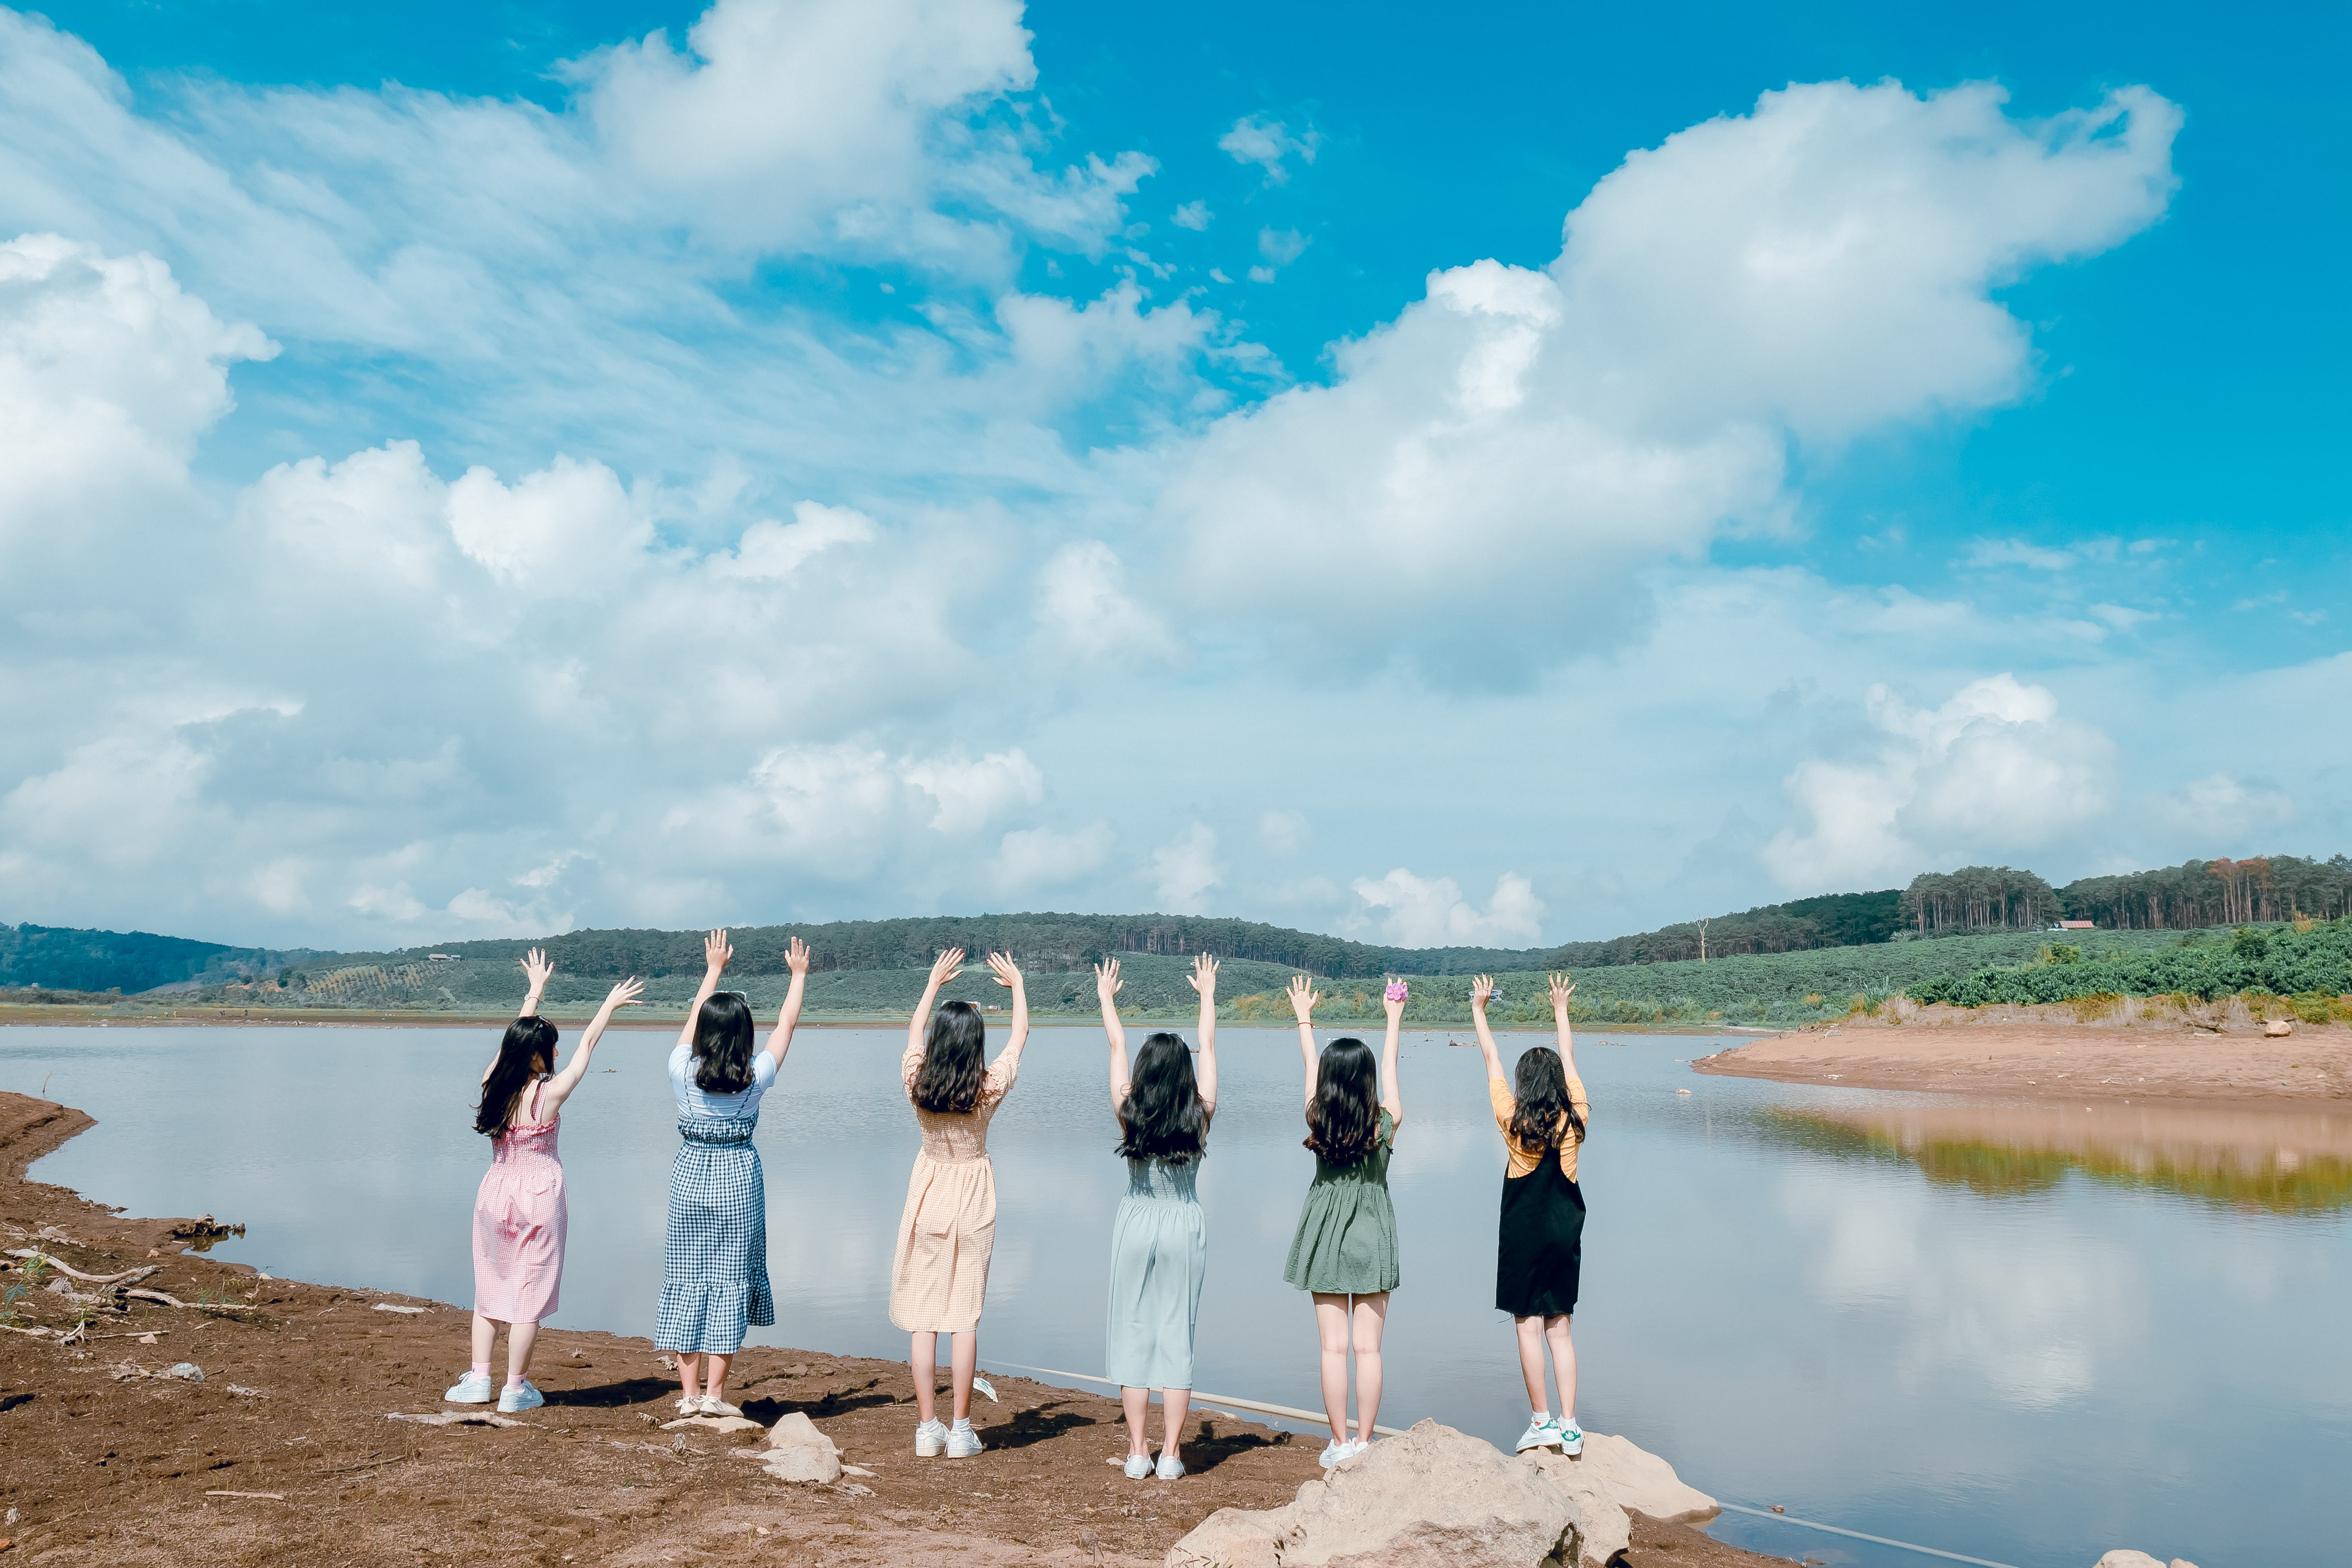 Six Girls Raise Their Hands in Front of Body of Water